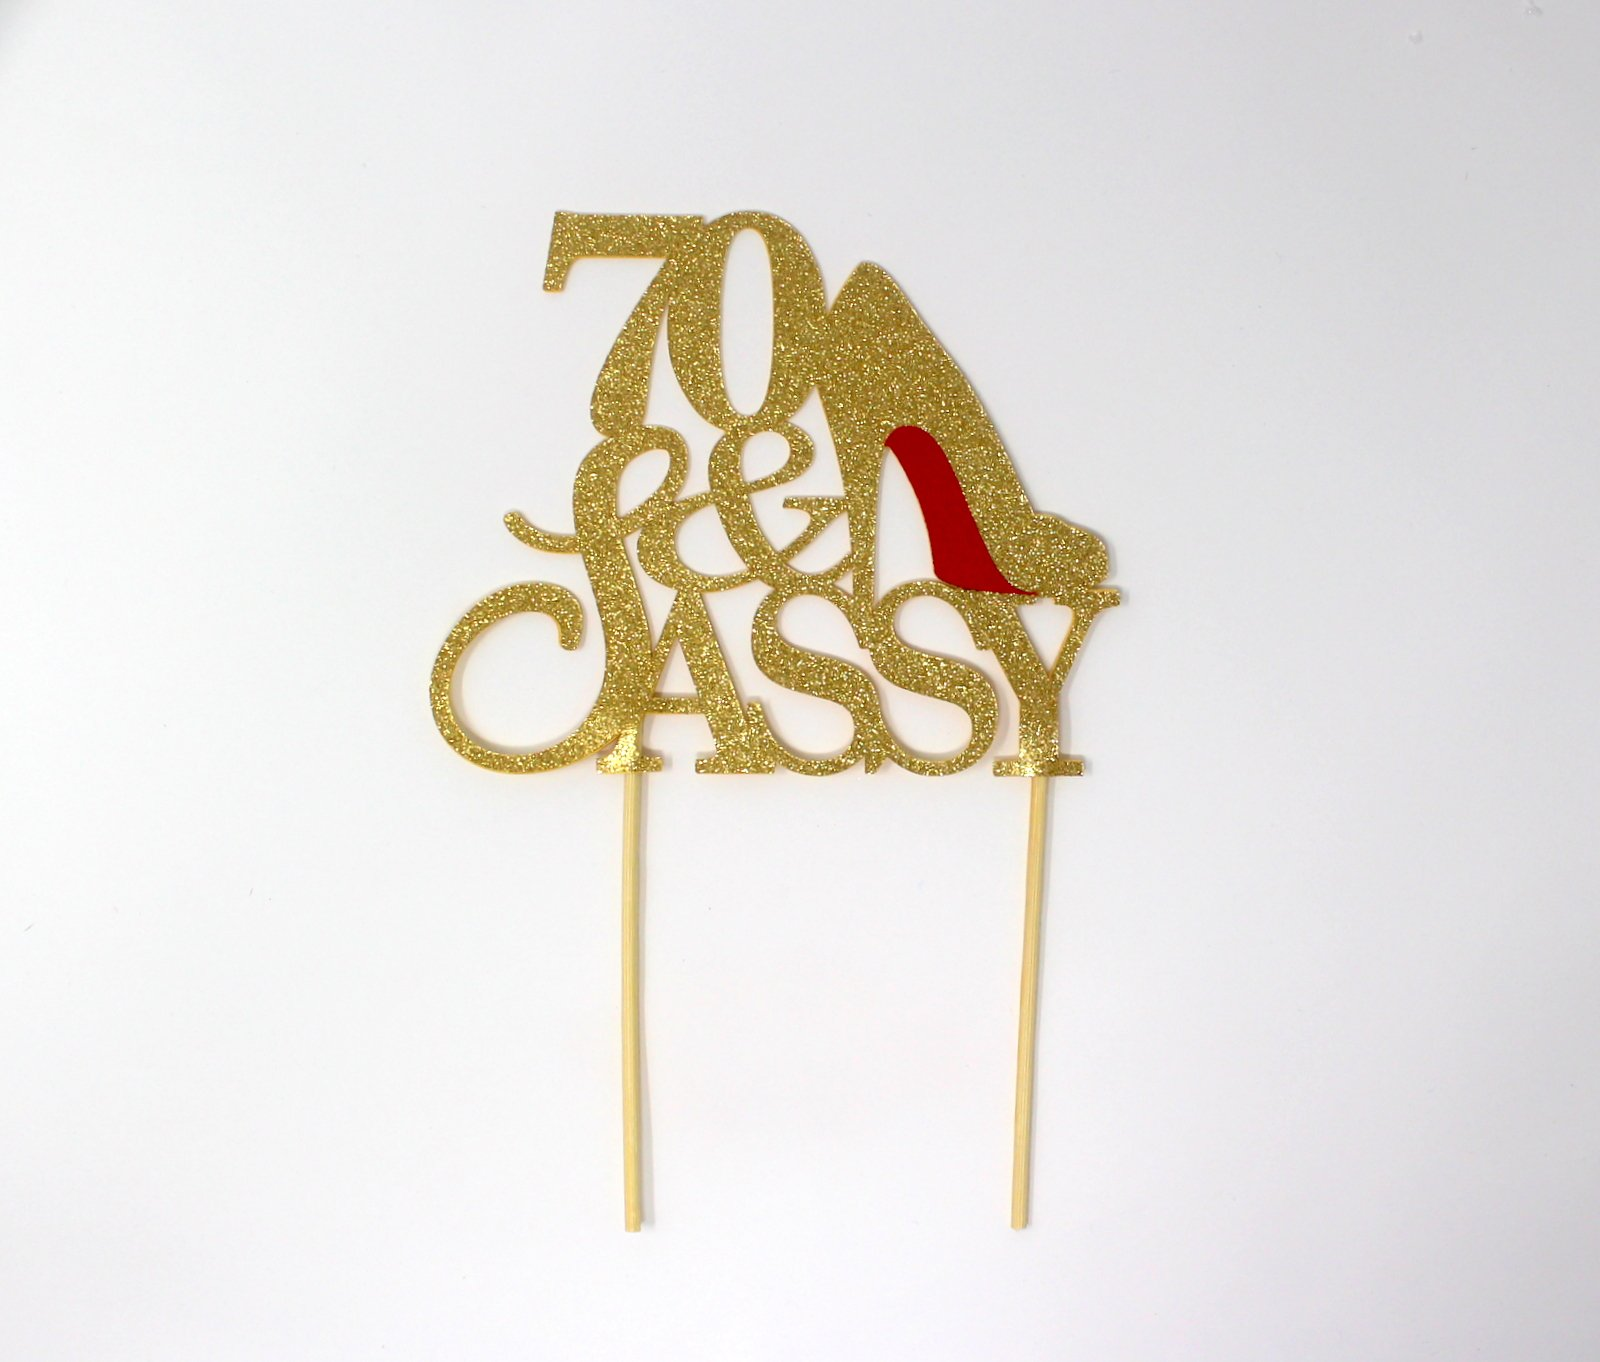 All About Details CAT70SAGOL 70 & Sassy Cake Topper (Gold), 6in wide and 5in tall with 2-pcs of 4in wood skewers